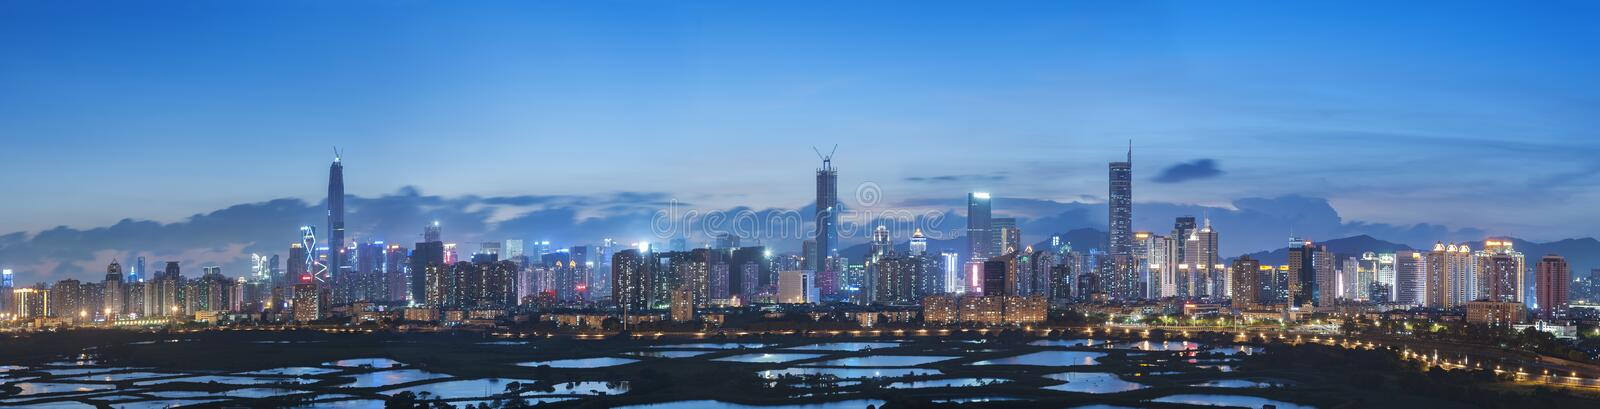 Skyline of Shenzhen City, China at twilight. Viewed from Hong Ko stock image